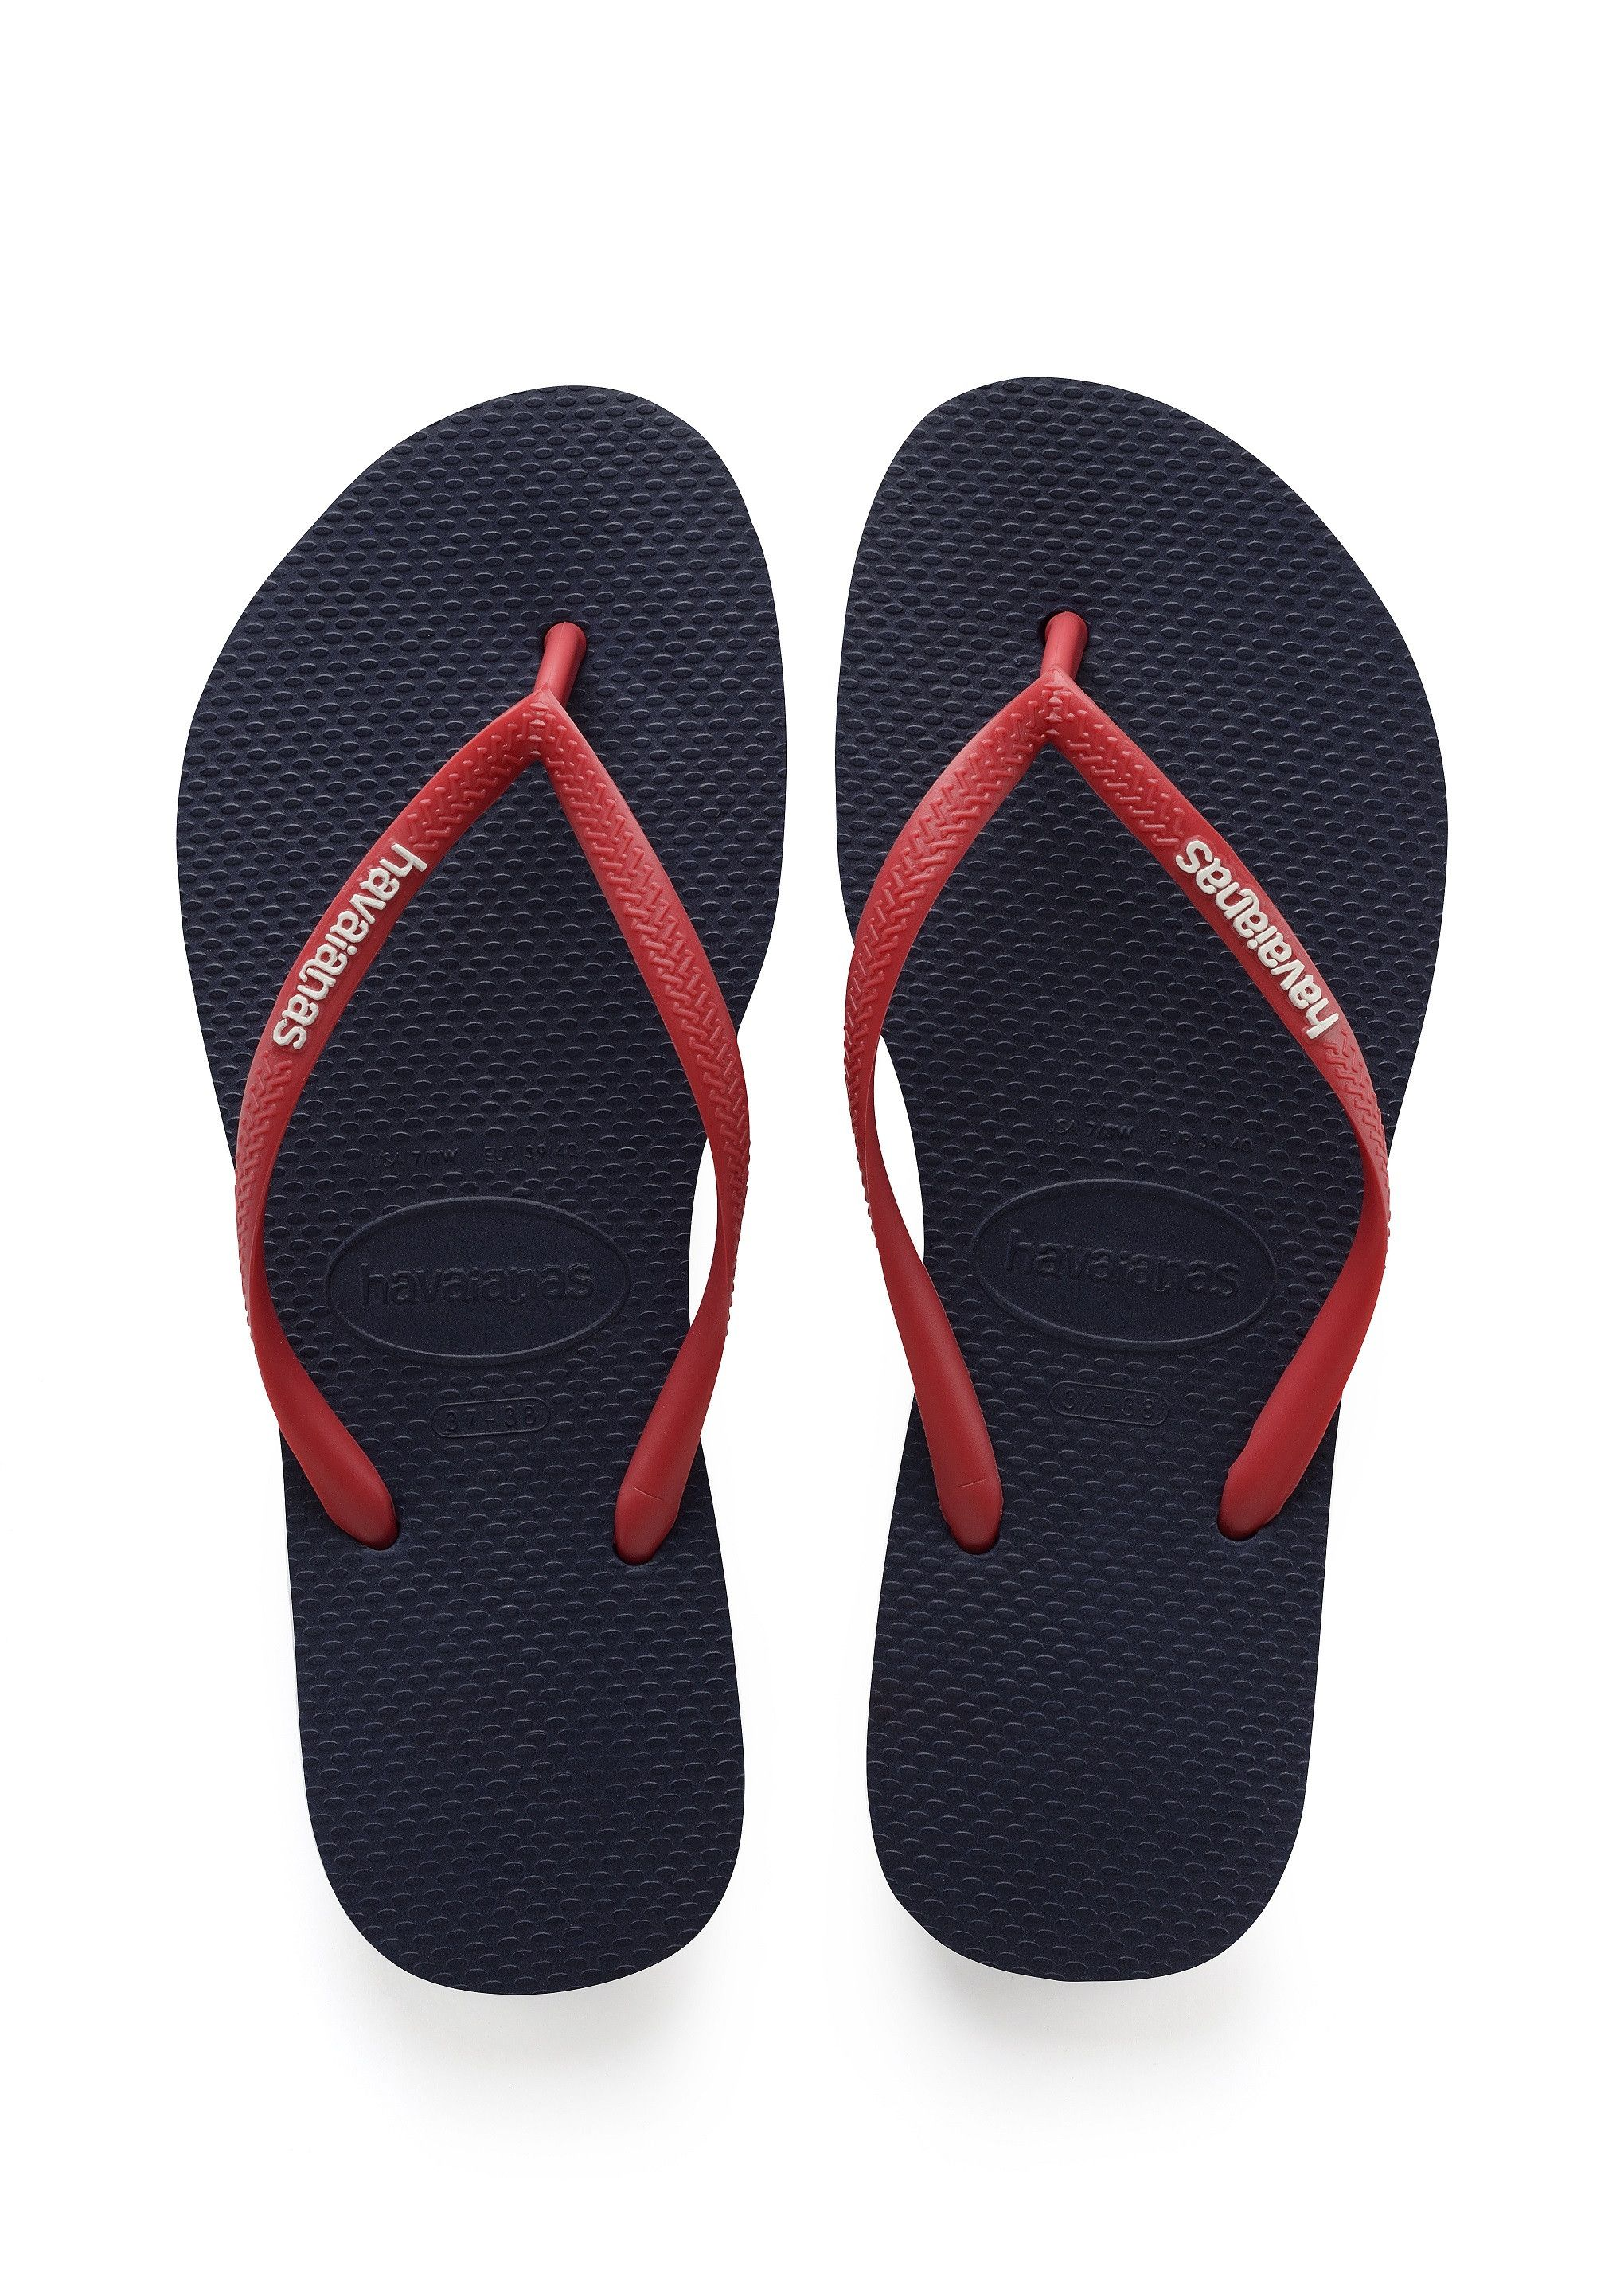 f8d5f6dcde16d2 Havaianas Slim Logo Pop Up Sandal Navy Blue Ruby Red Price From  21